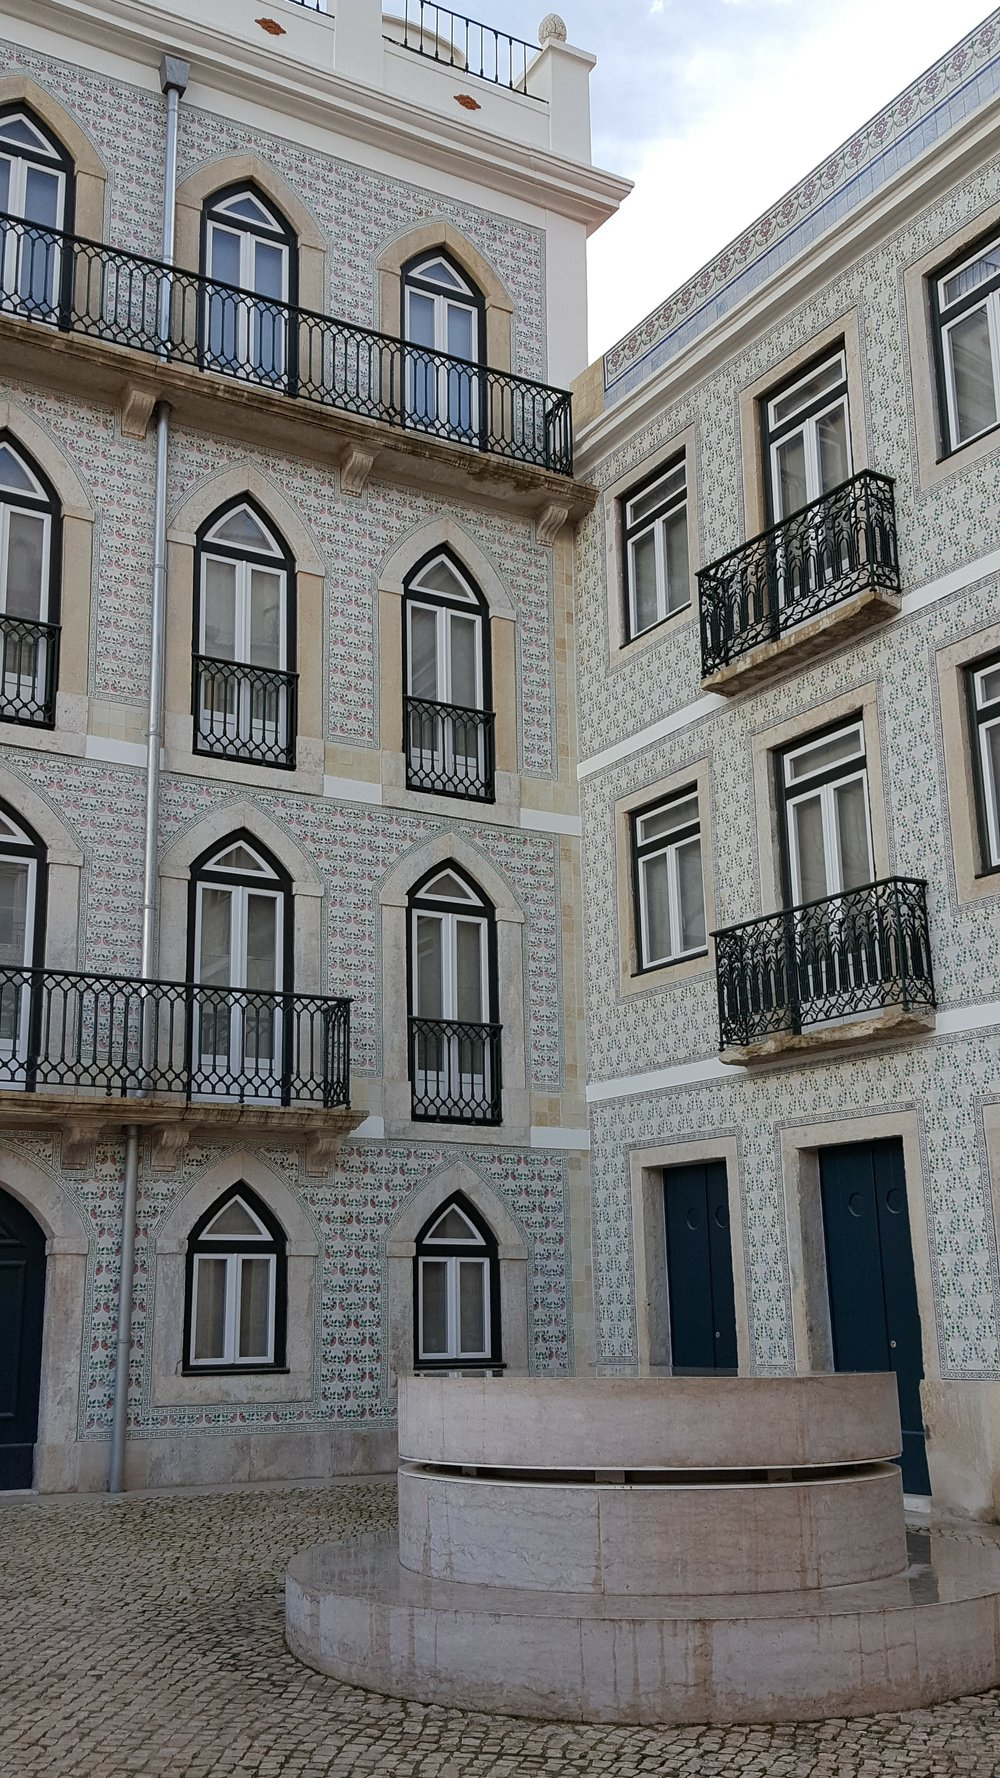 Azulejos in the Alfama